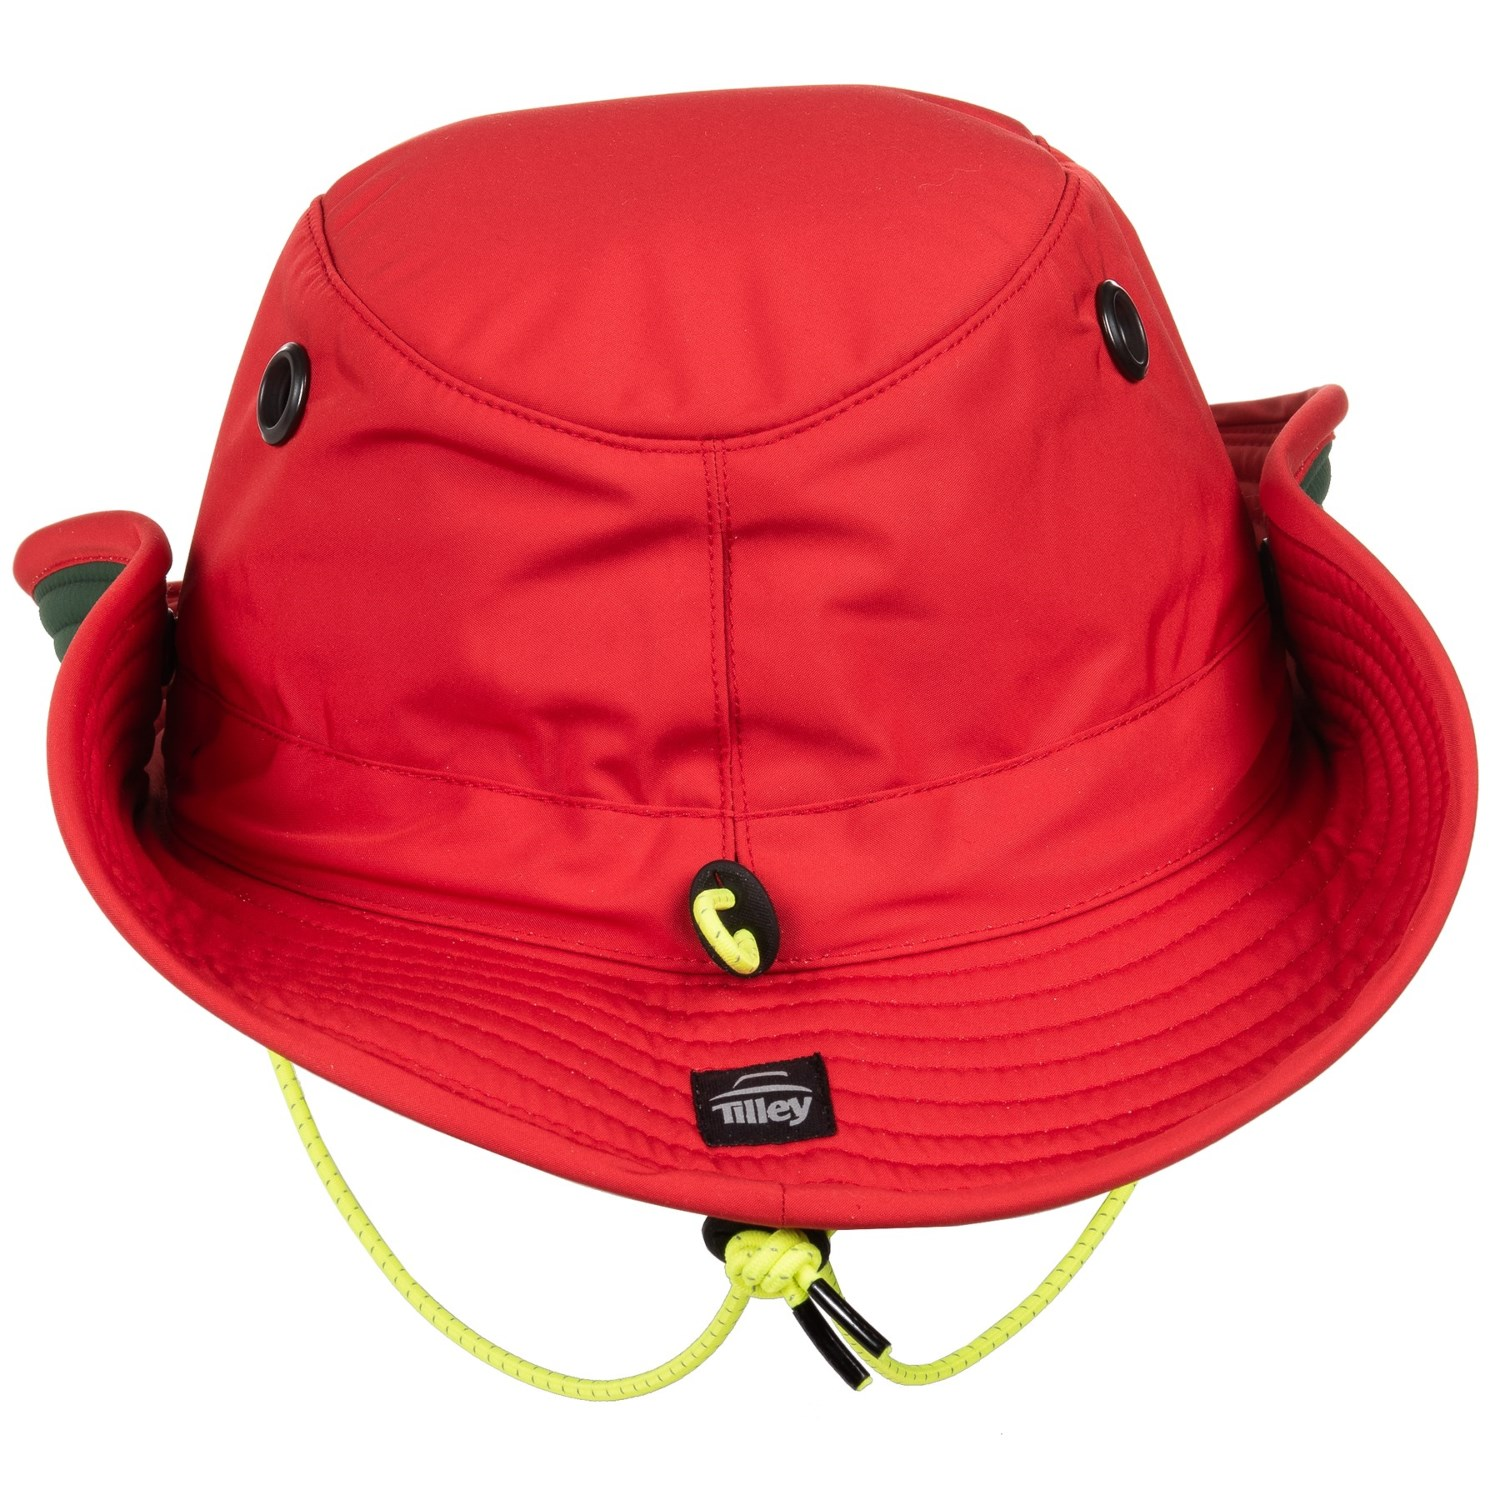 2717d8a114b Tilley Paddlers Hat (For Men and Women) - Save 60%